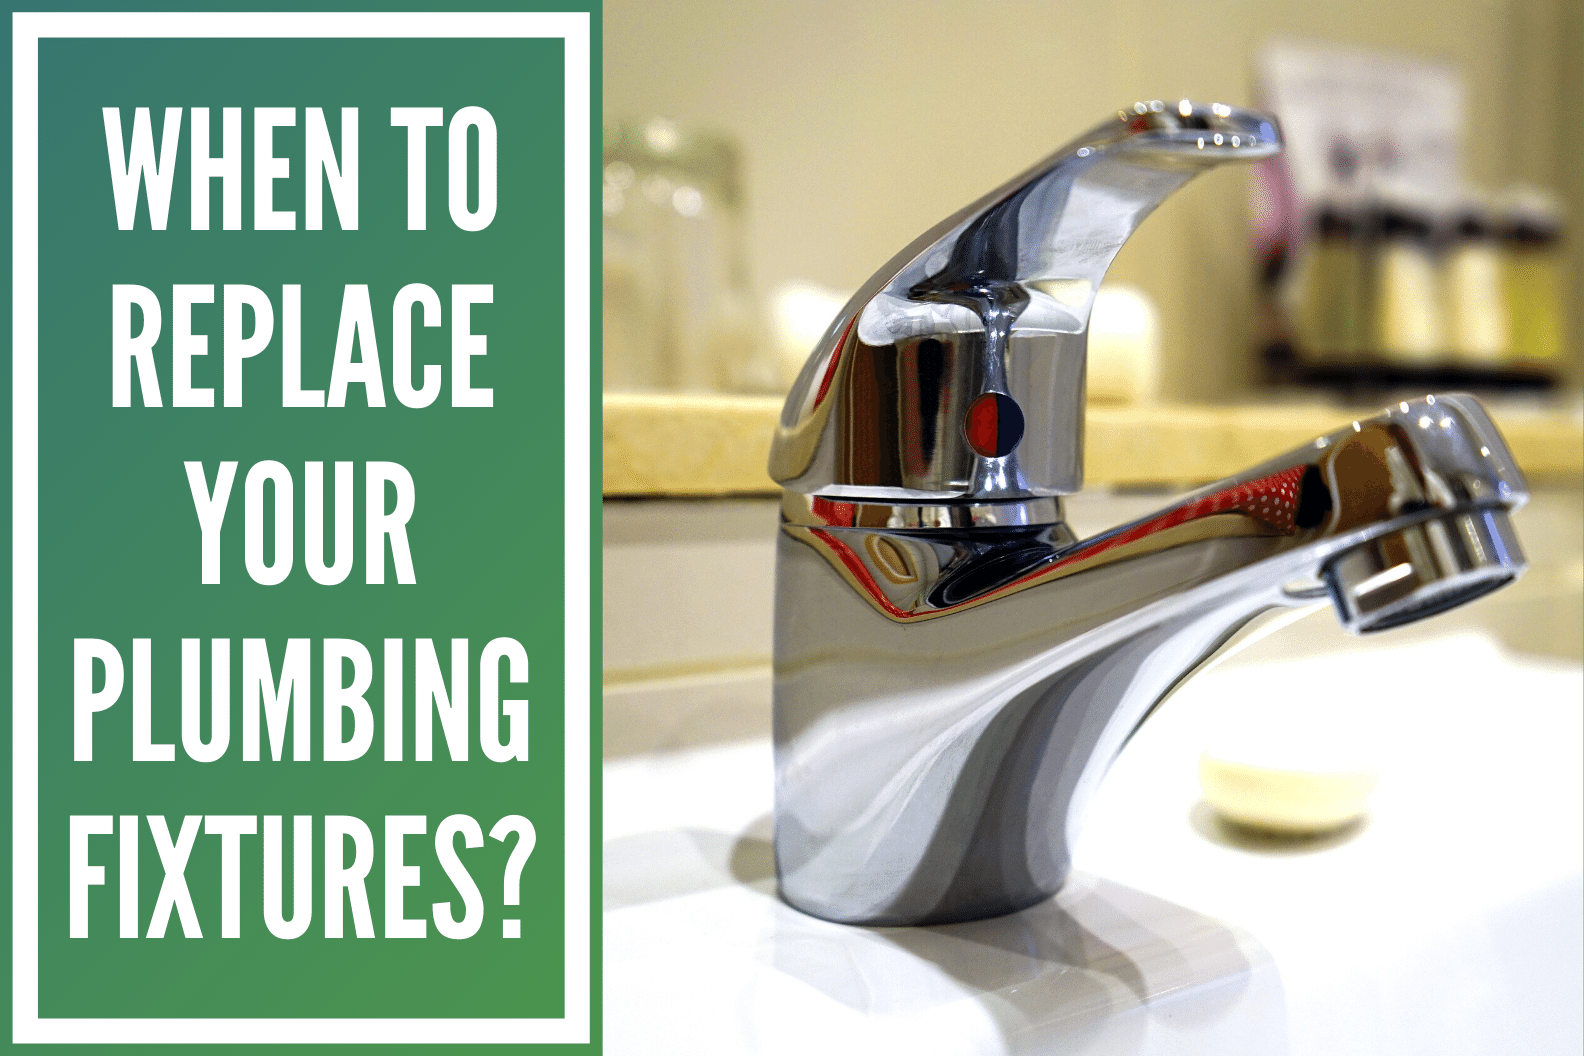 When to Replace Your Plumbing Fixtures?